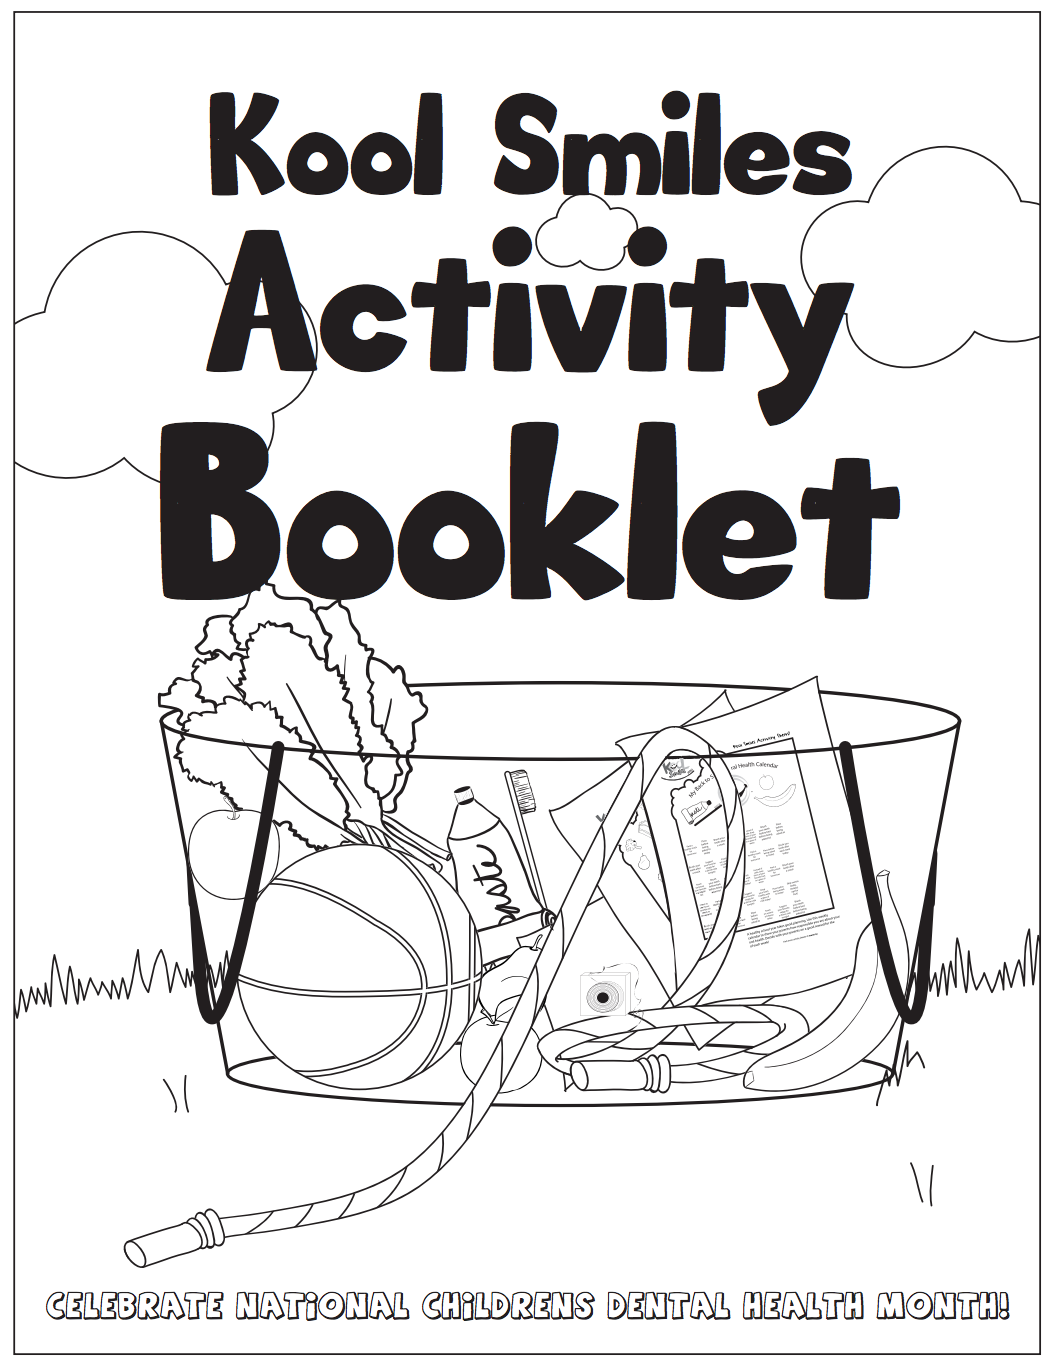 Make learning about dental hygiene fun with our activity